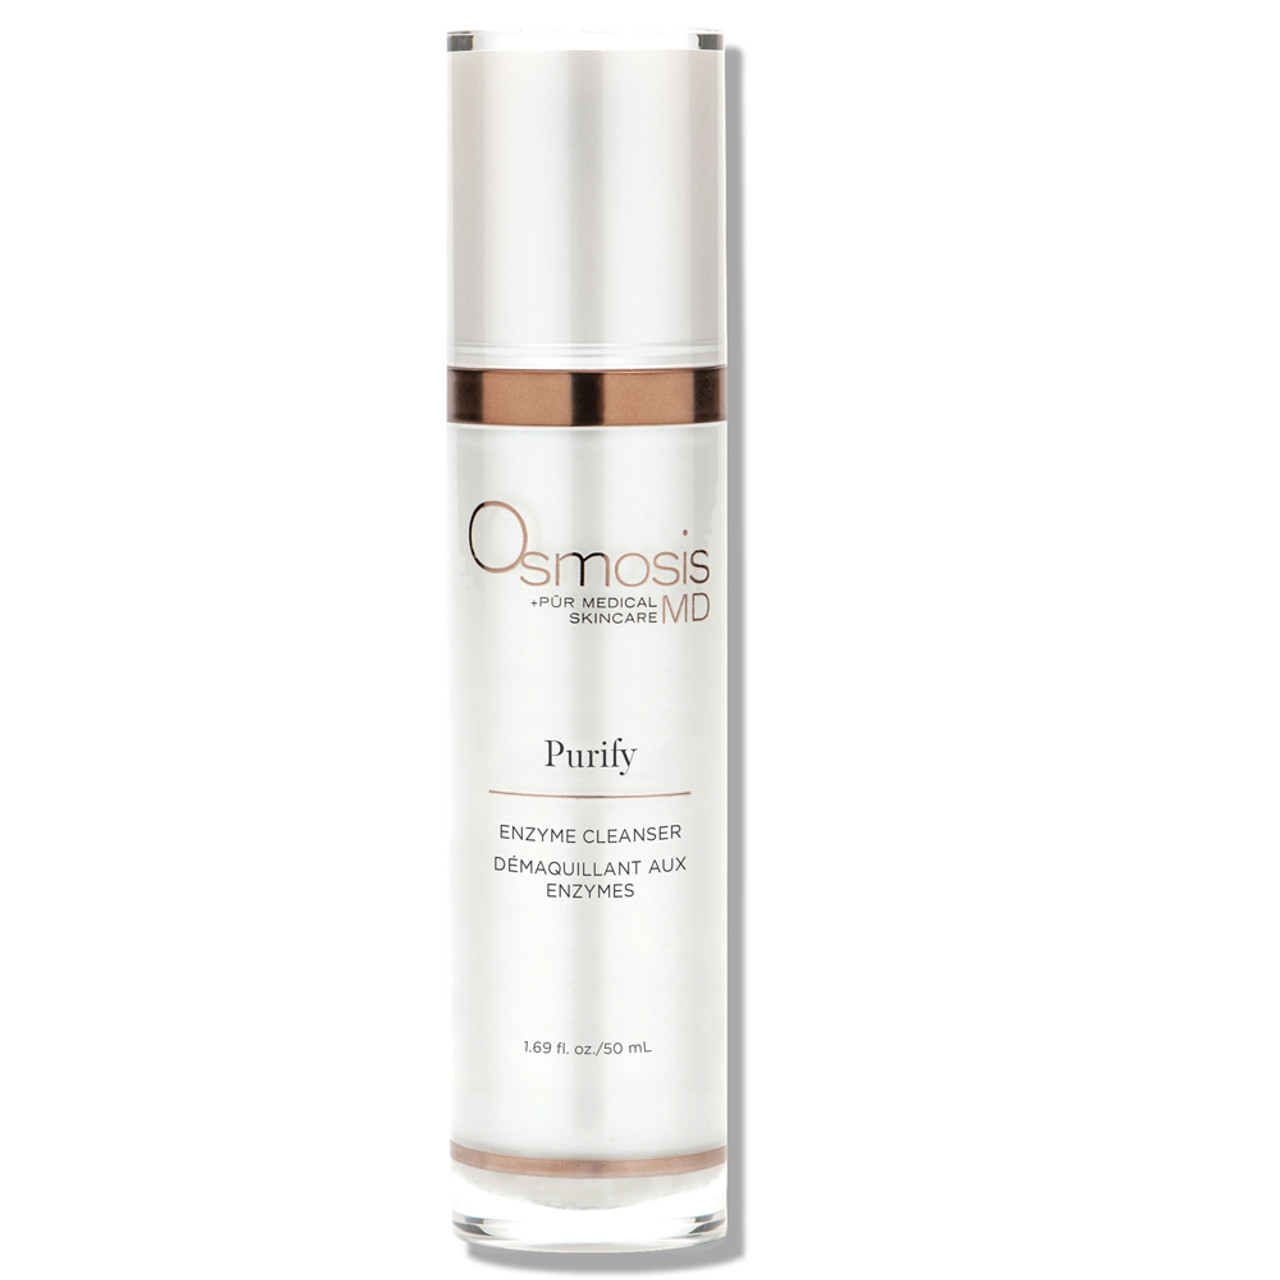 Osmosis +Skincare MD Purify - Enzyme Cleanser